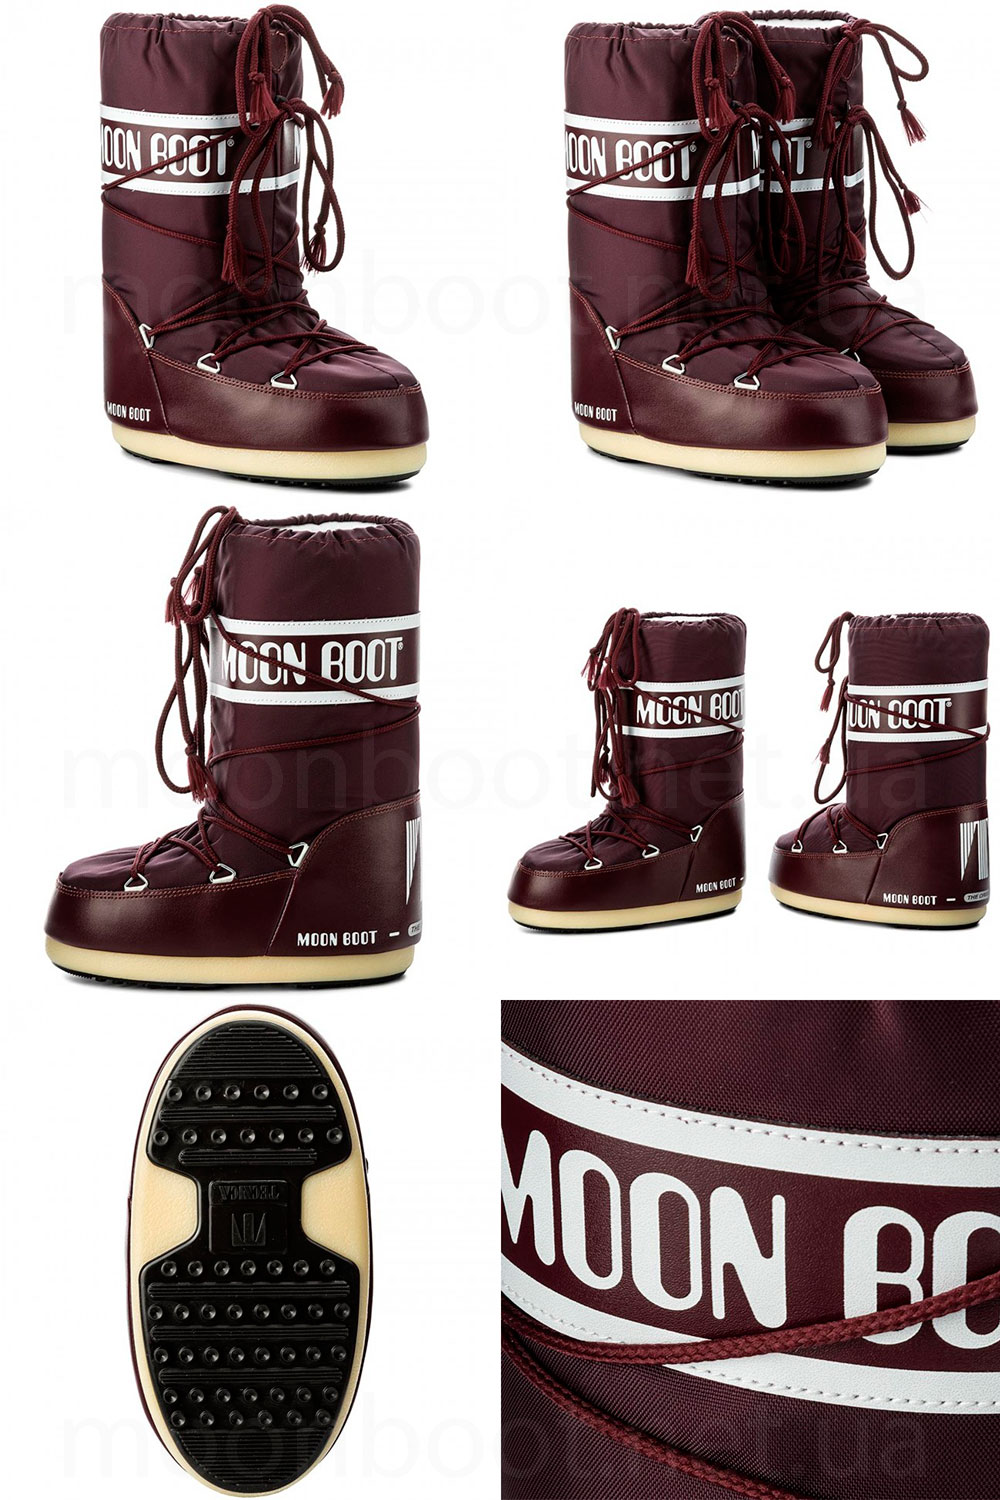 http://www.moonboot.net.ua/images/upload/burgundy-mooonboot.net.ua-original-kids-детские-луноходы-мунбуты8.jpg